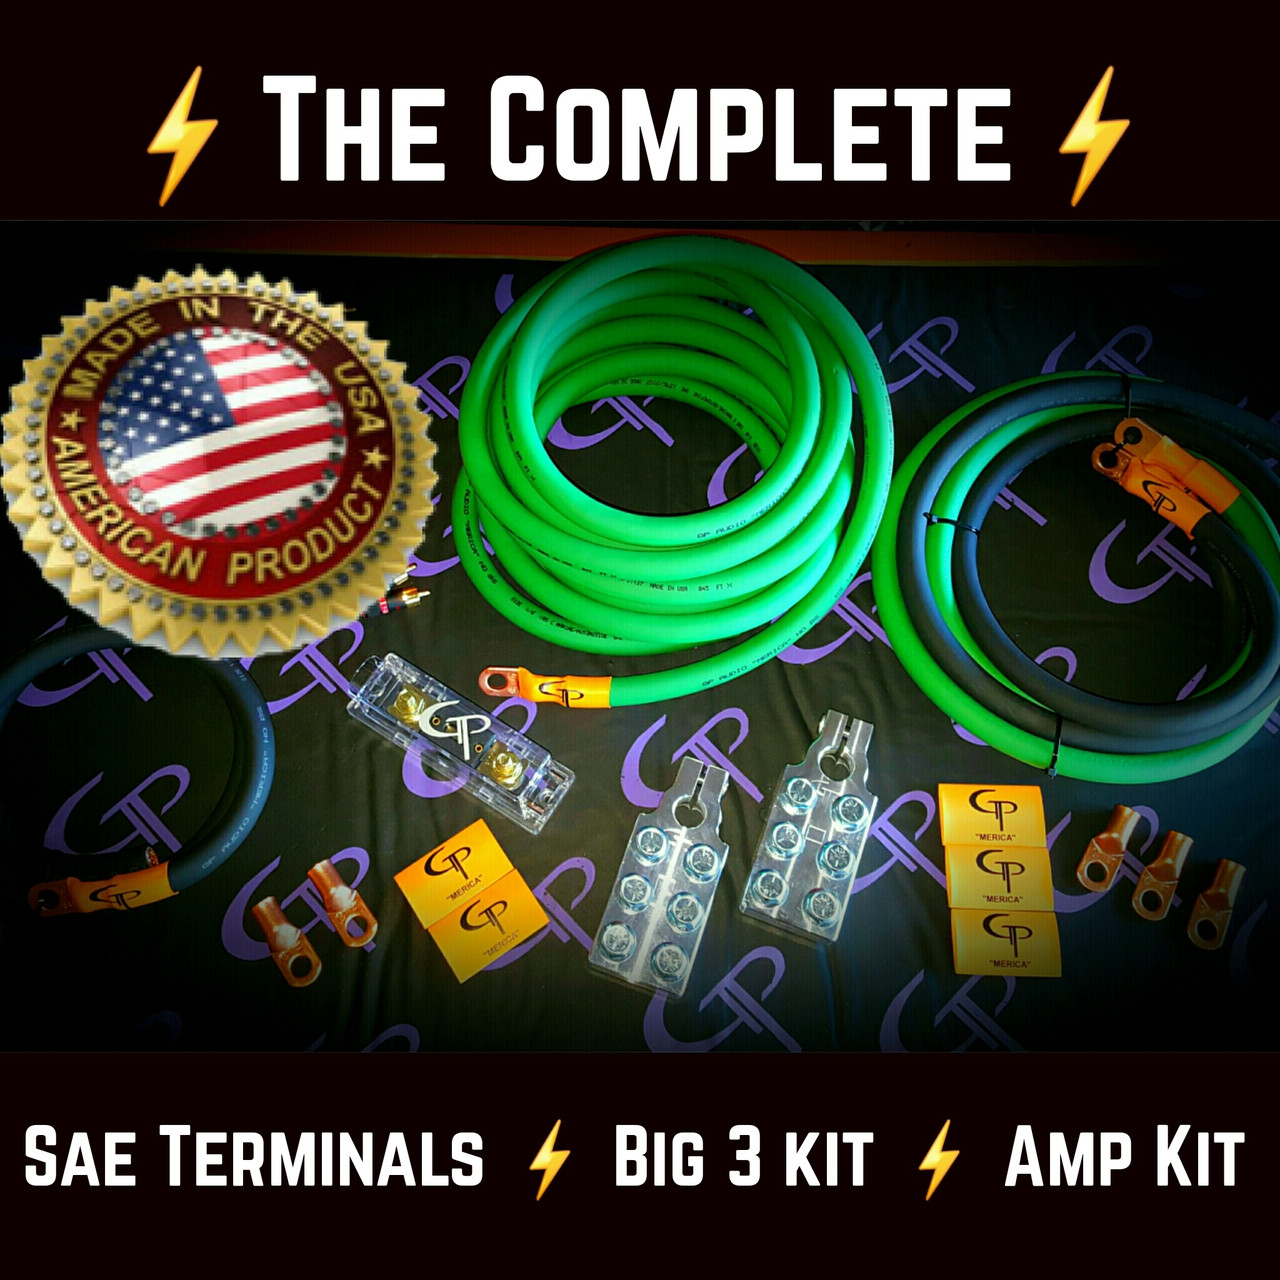 The Complete 1 0 Awg Stage Wiring Kit Gp Car Audio 2 Amp